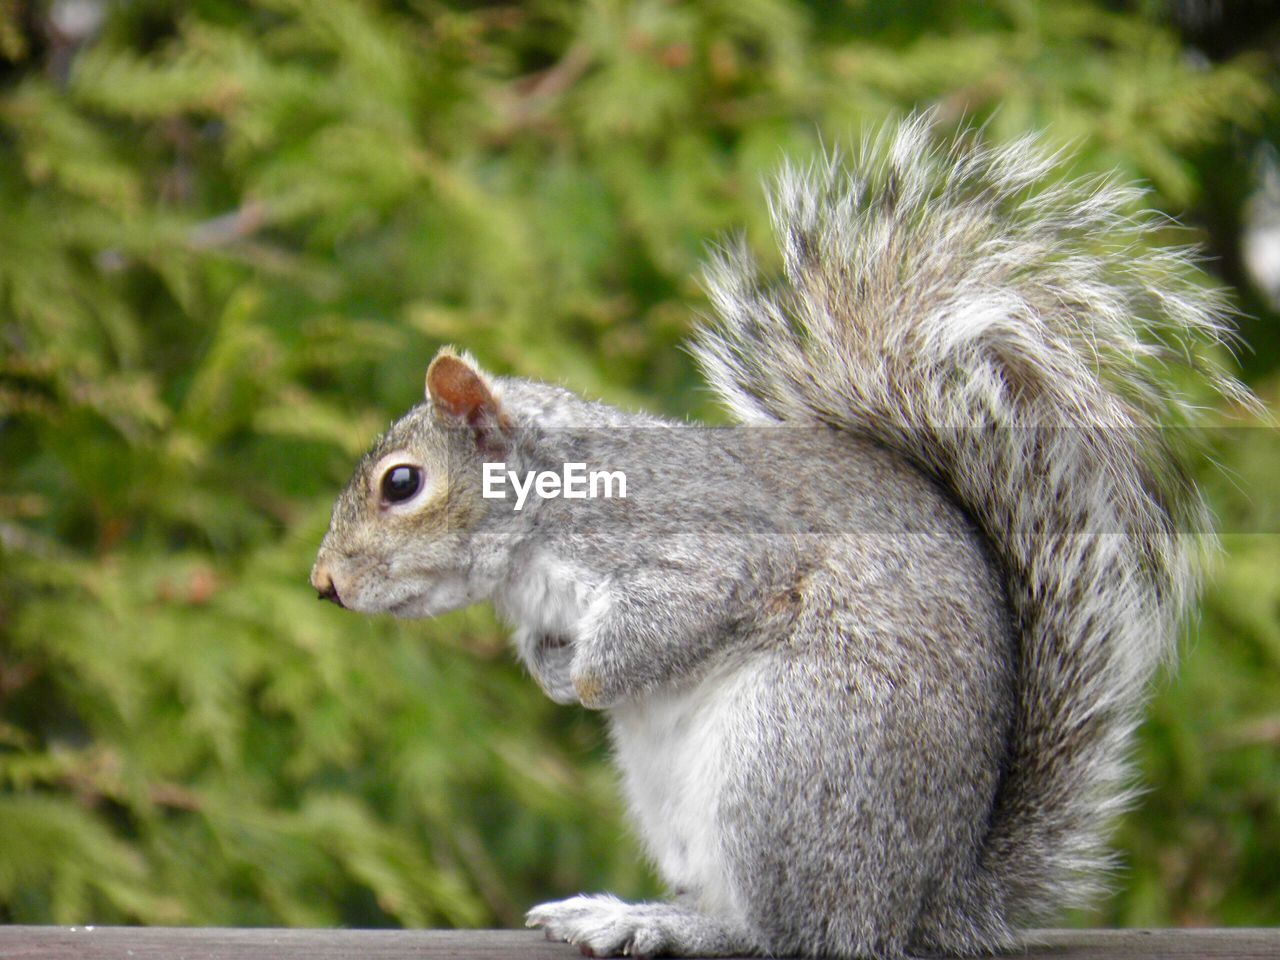 animal, animal themes, animal wildlife, one animal, animals in the wild, vertebrate, focus on foreground, close-up, rodent, mammal, squirrel, no people, side view, day, land, nature, plant, outdoors, field, looking, whisker